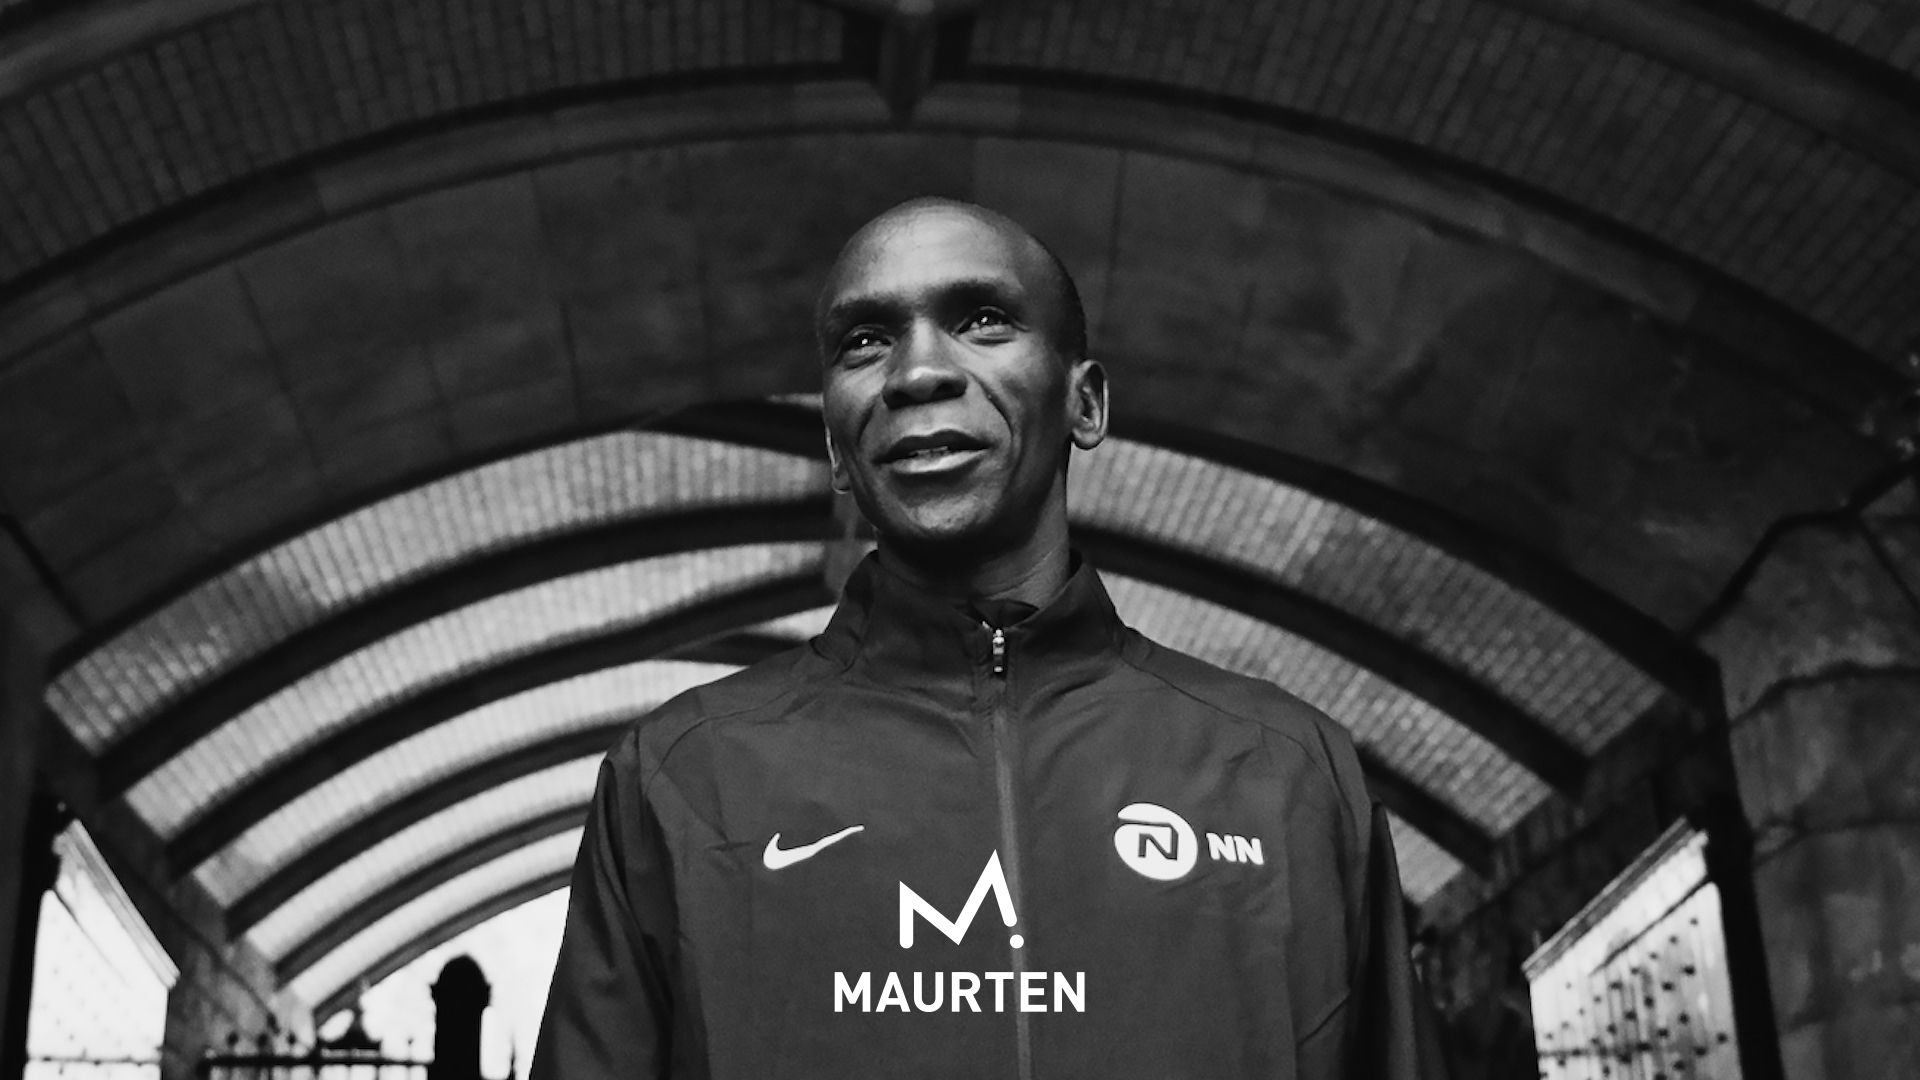 Athletes like Eliud Kipchoge use Maurten drink and gel in their training and during competition.